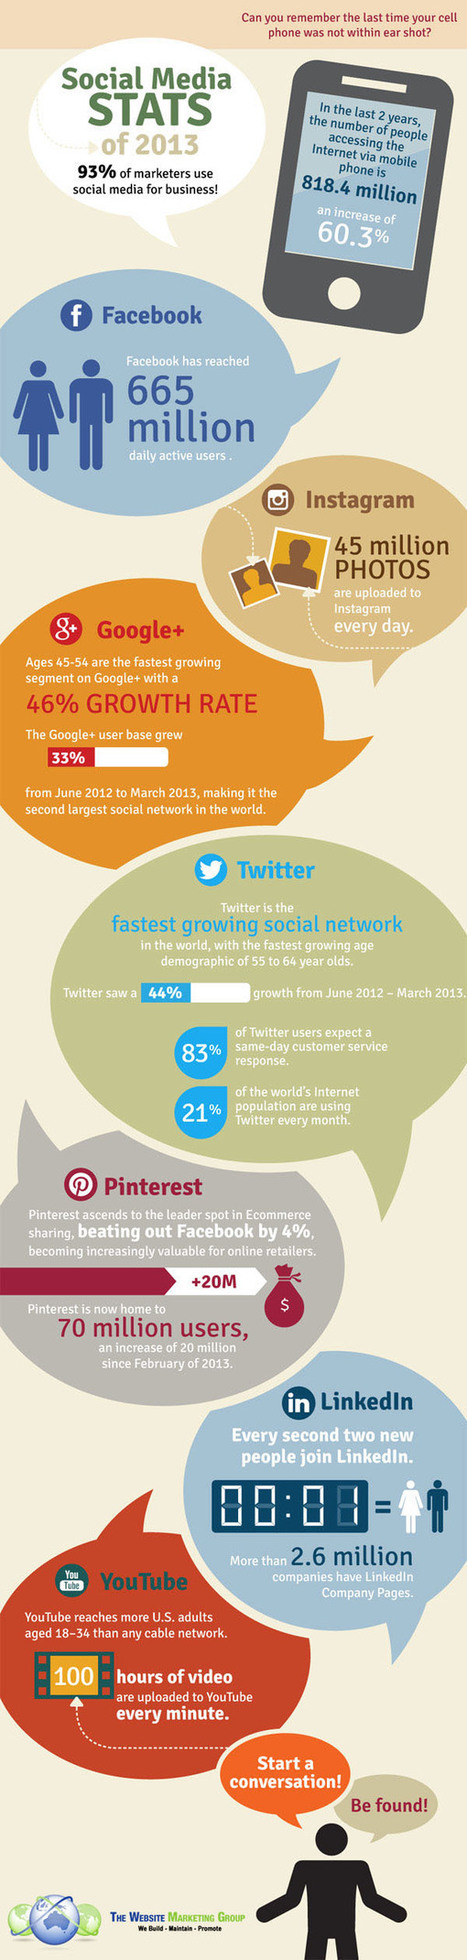 Social Media Infographic 2013 : Which platform is growing the fastest? | News from the web | Scoop.it